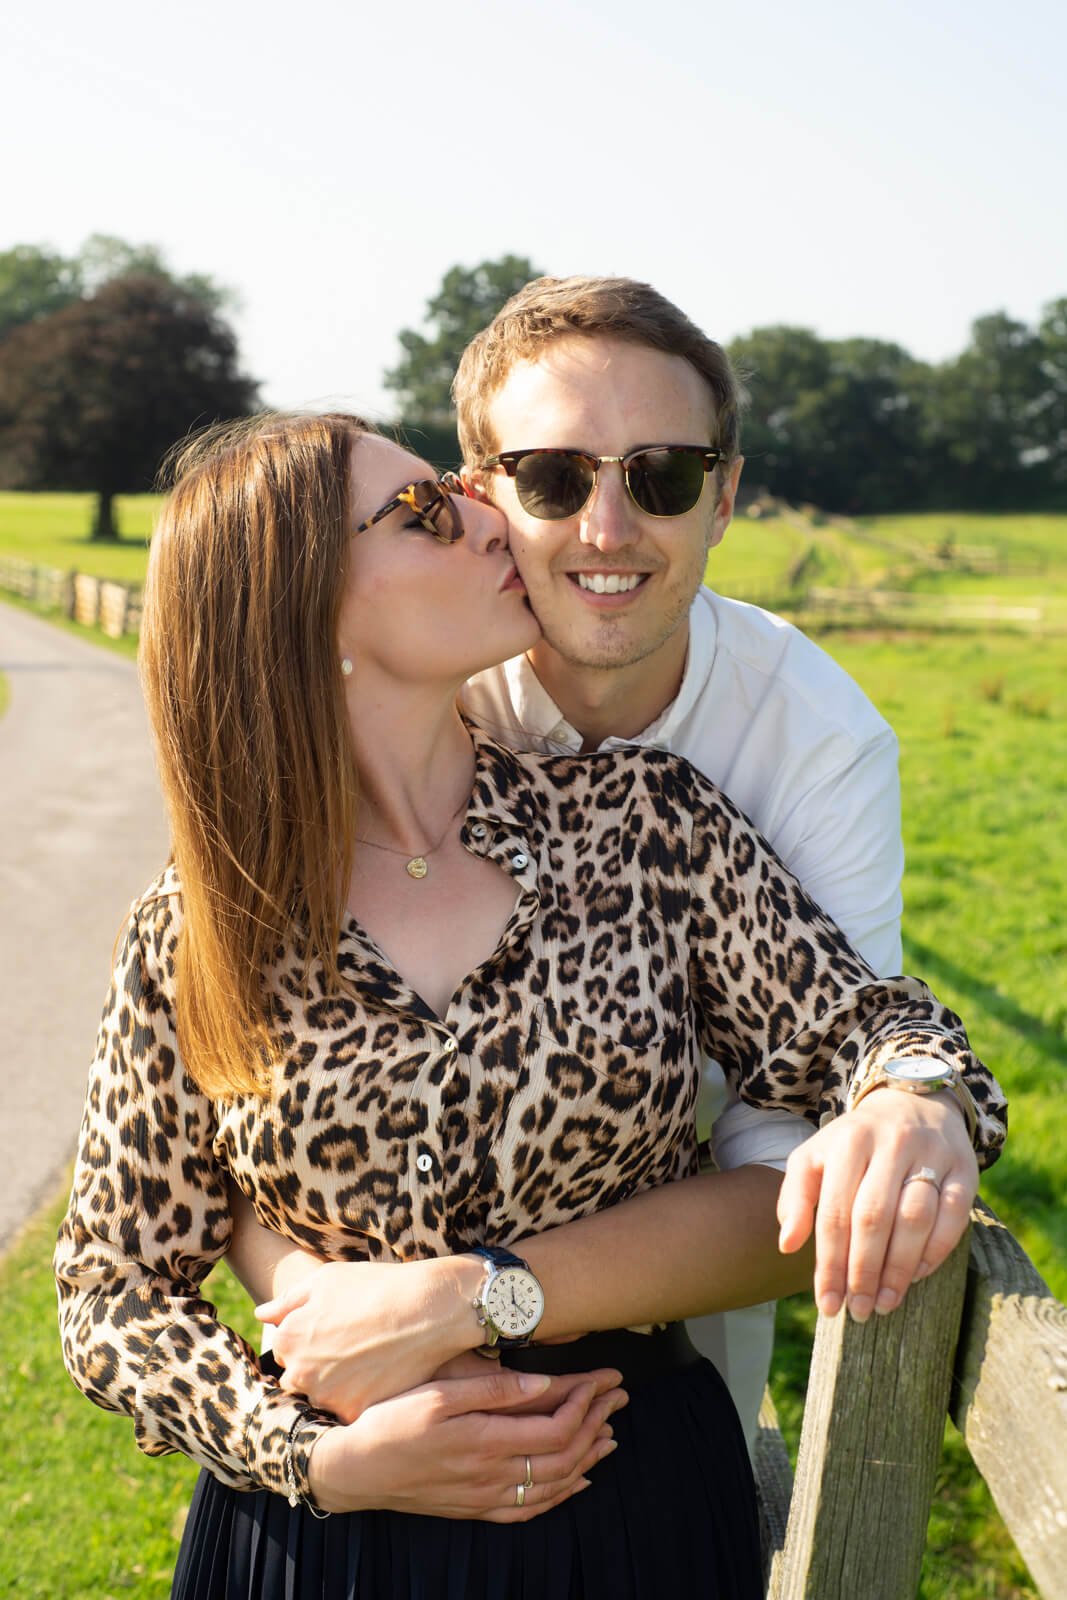 Young woman in leopard print leans back and kisses her fiance on the cheek